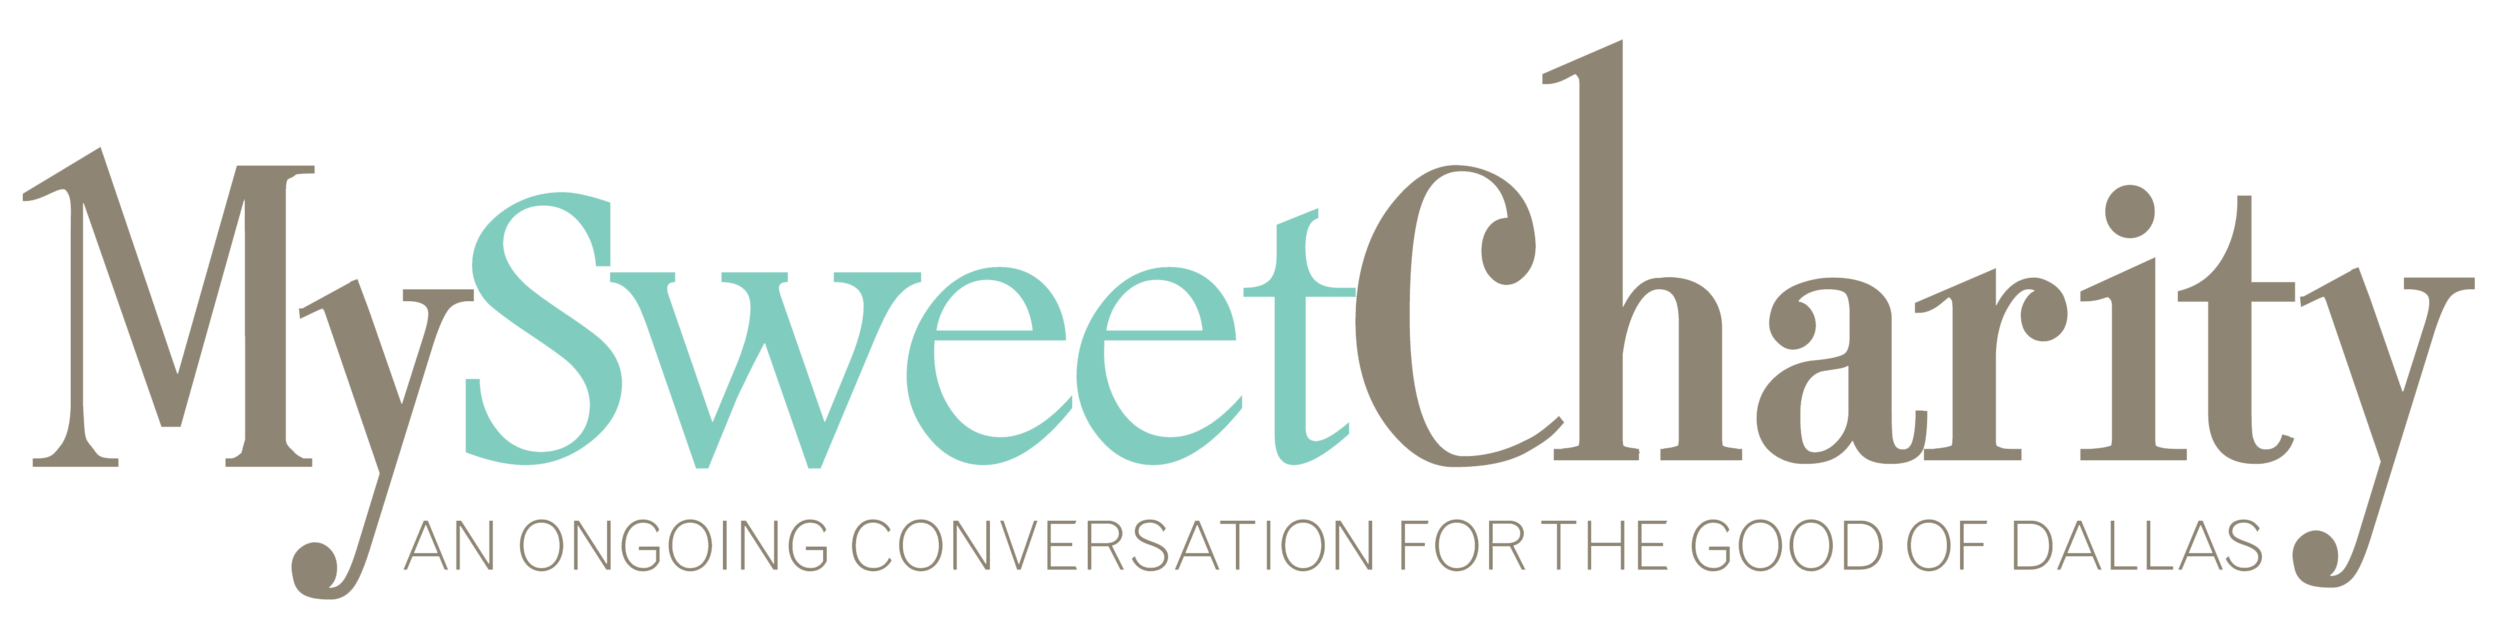 MySweetCharity-transparent (media sponsor).png